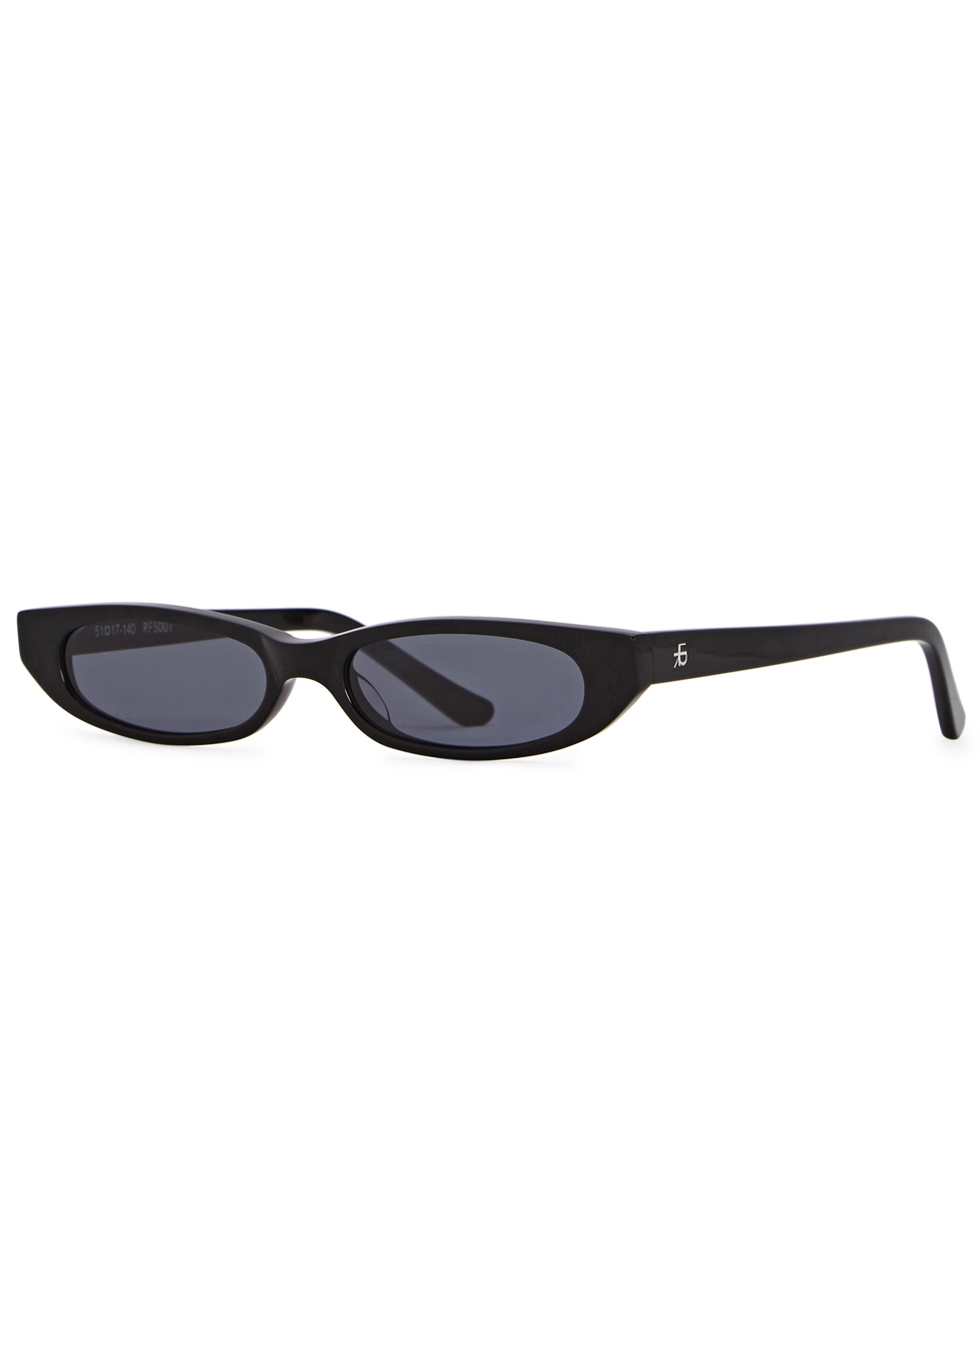 ROBERI AND FRAUD Frances Oval-Frame Sunglasses in Black